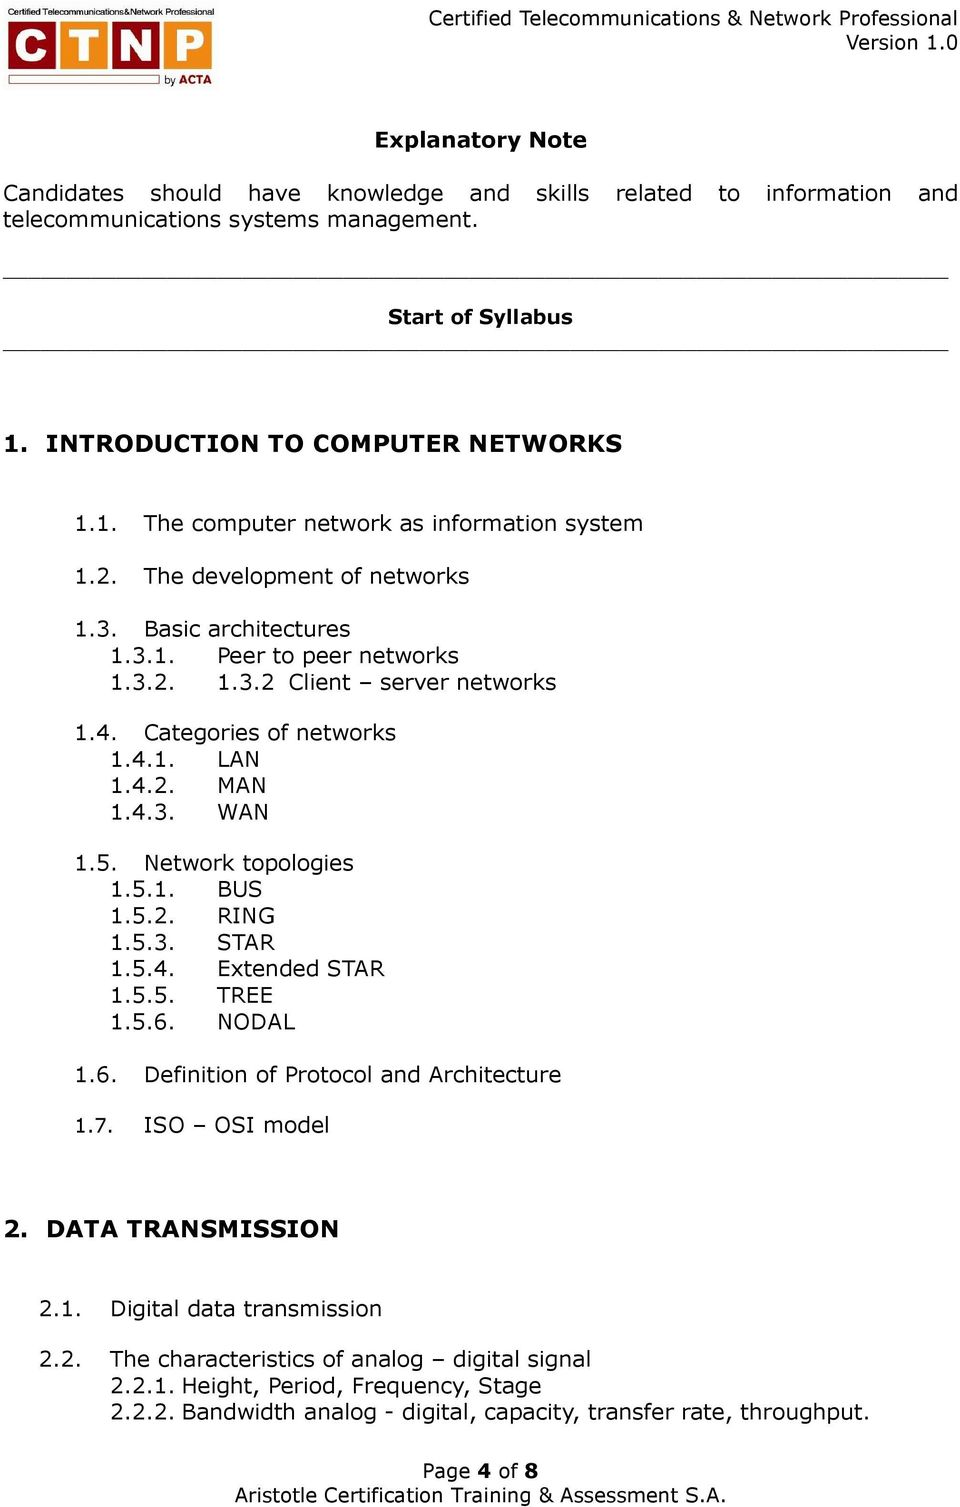 Network topologies 1.5.1. BUS 1.5.2. RING 1.5.3. STAR 1.5.4. Extended STAR 1.5.5. TREE 1.5.6. NODAL 1.6. Definition of Protocol and Architecture 1.7. ISO OSI model 2. DATA TRANSMISSION 2.1. Digital data transmission 2.